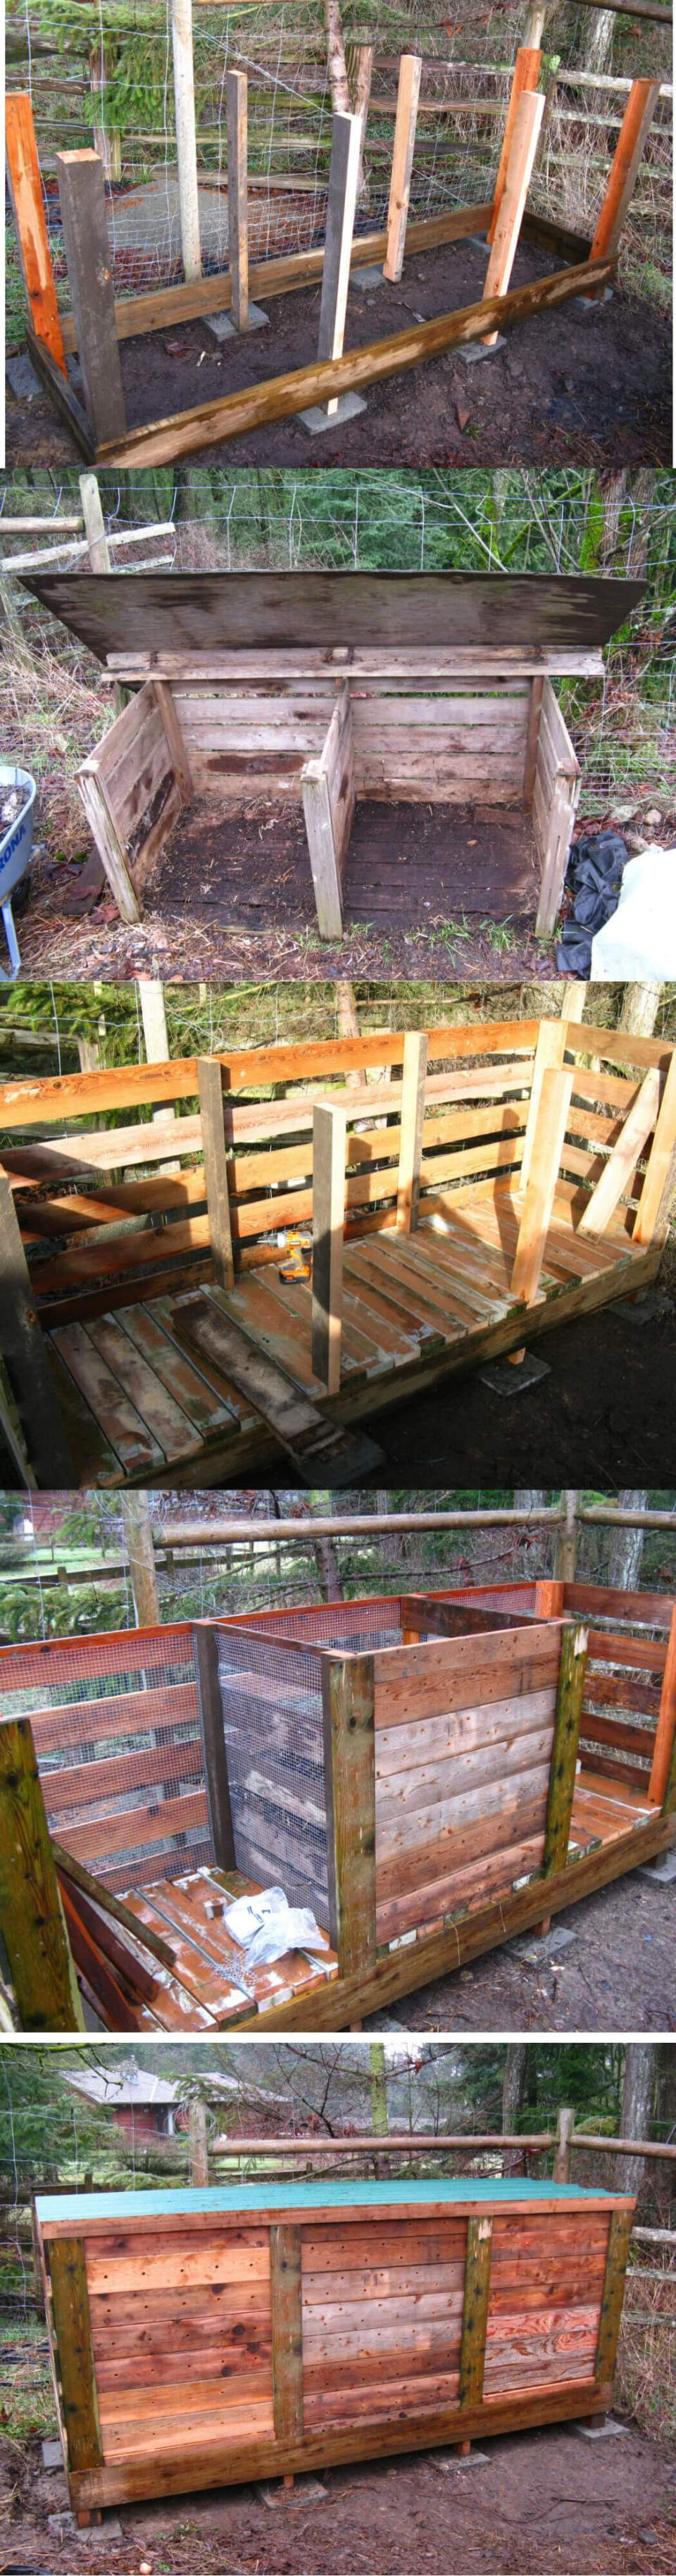 17+ Low Budget DIY Compost Bin Ideas 2020 that You Can Make